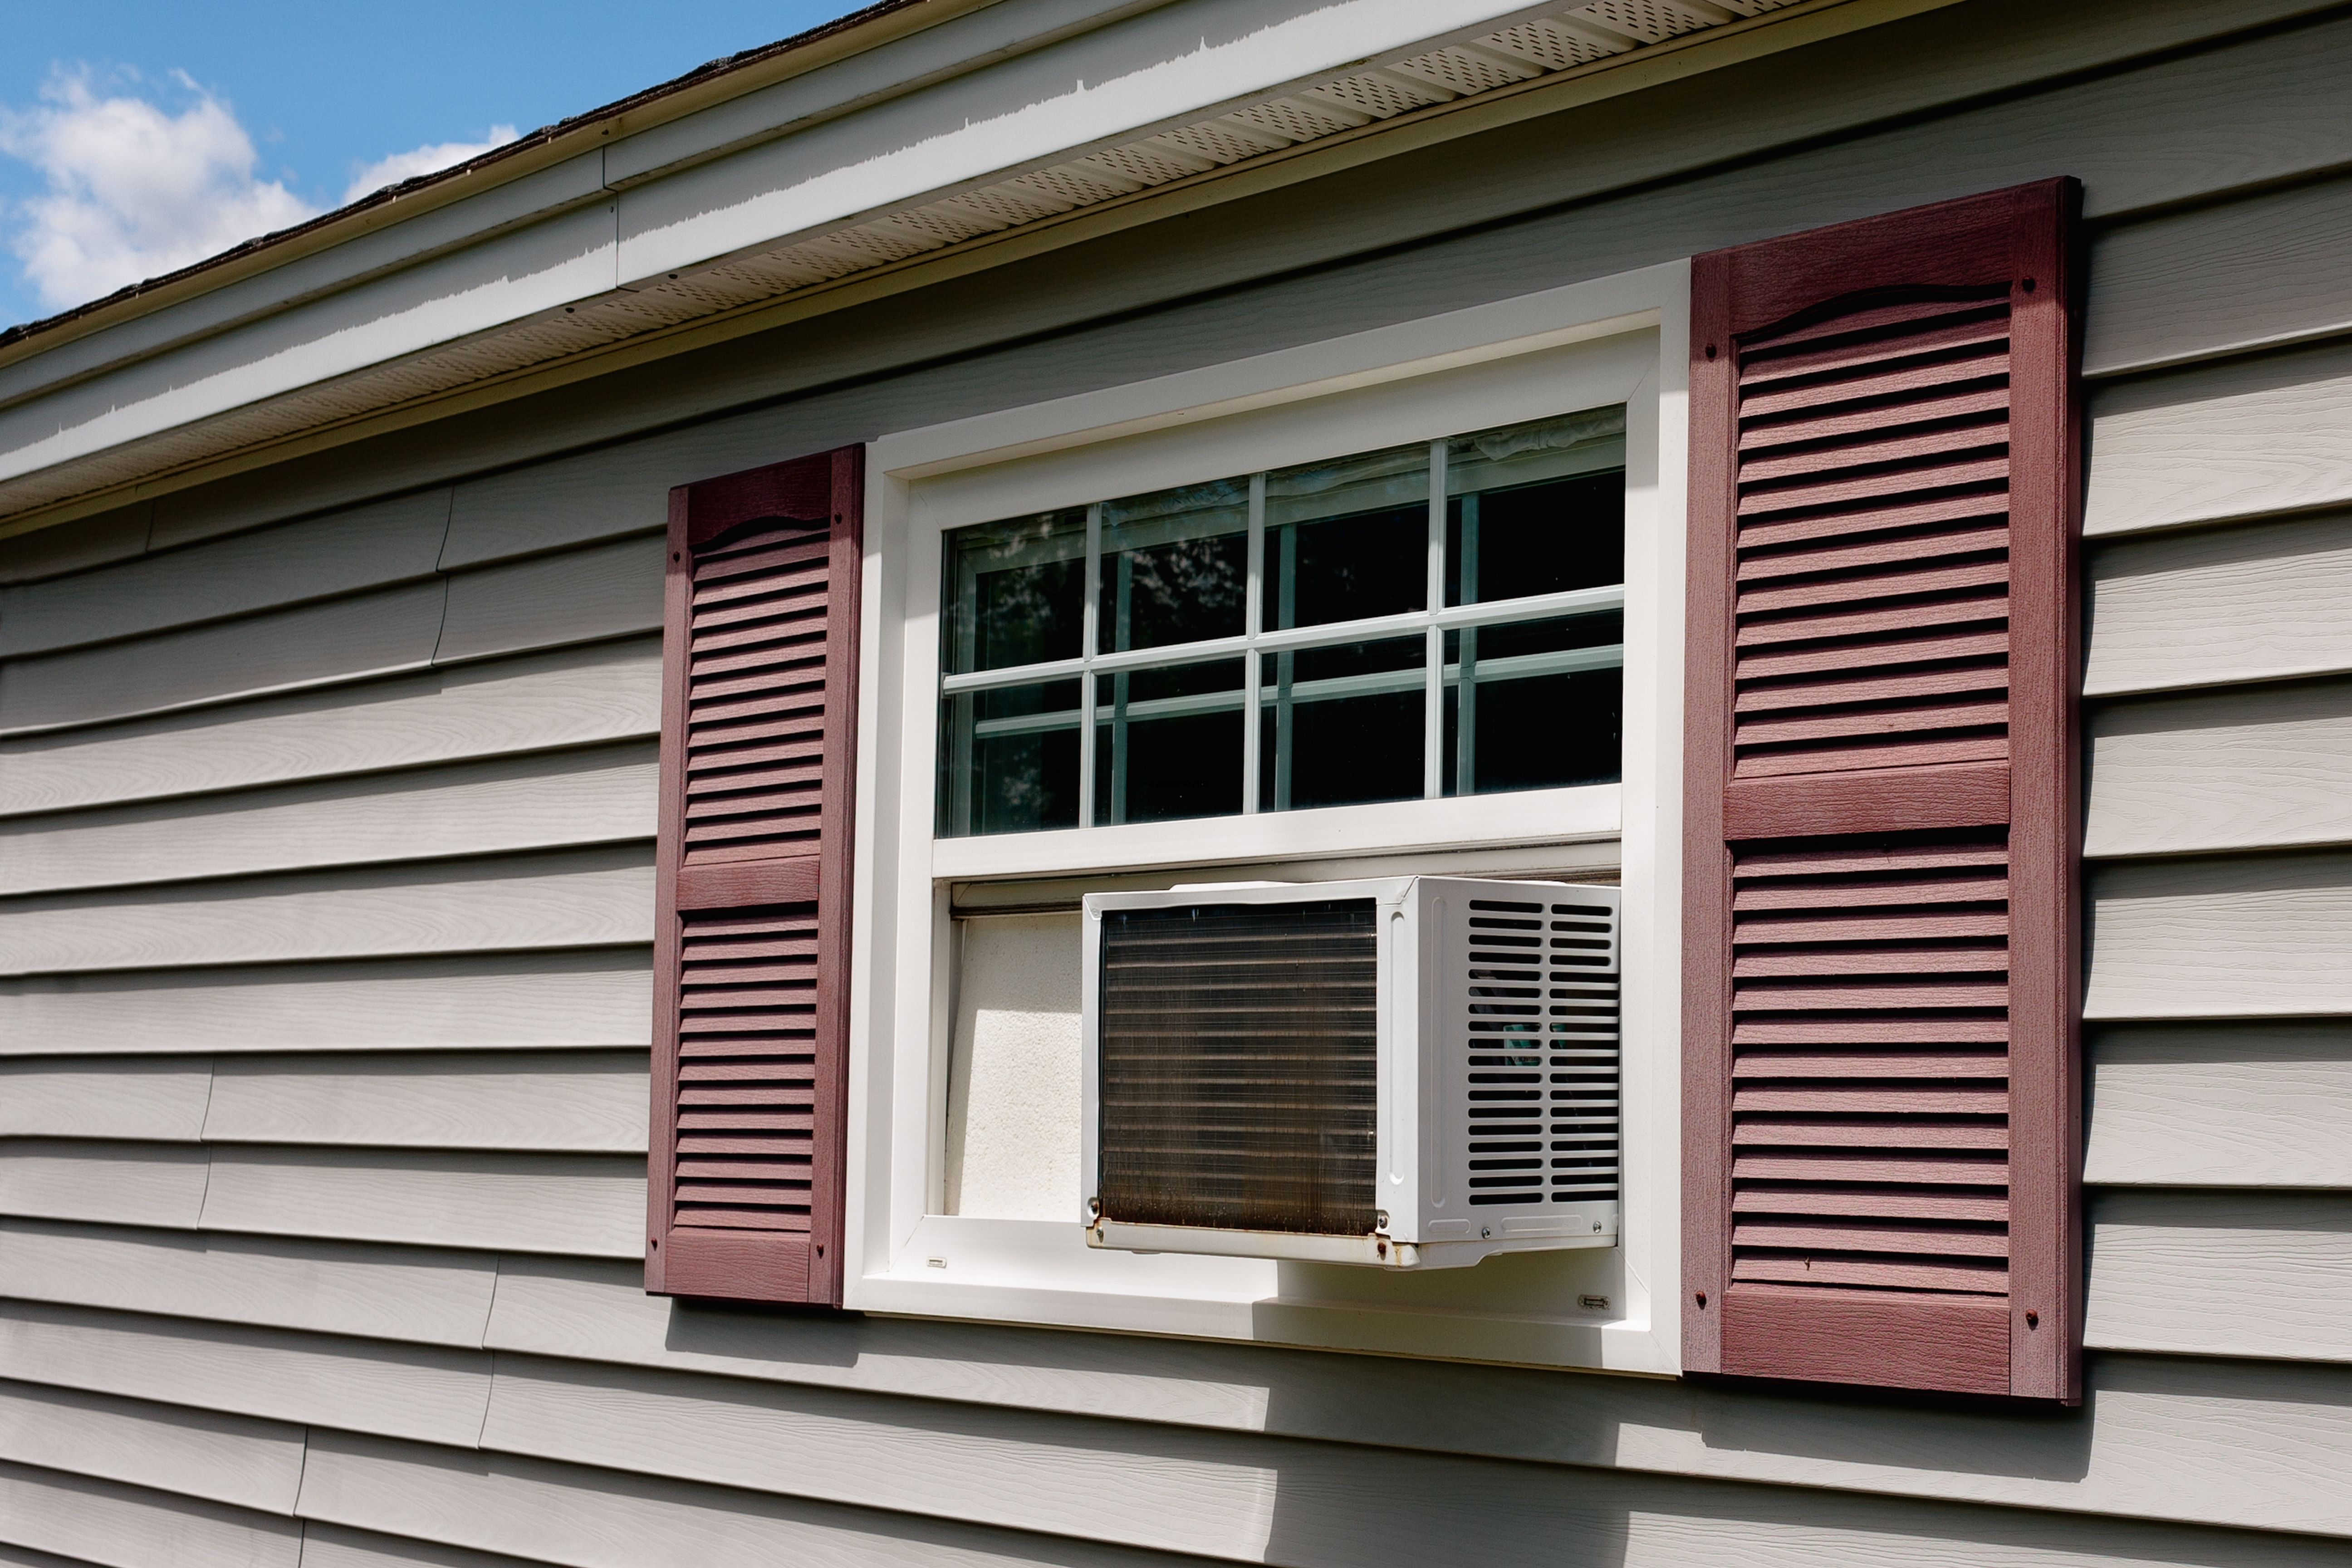 What Are the Benefits Of Having a Clean Window Air Conditioner